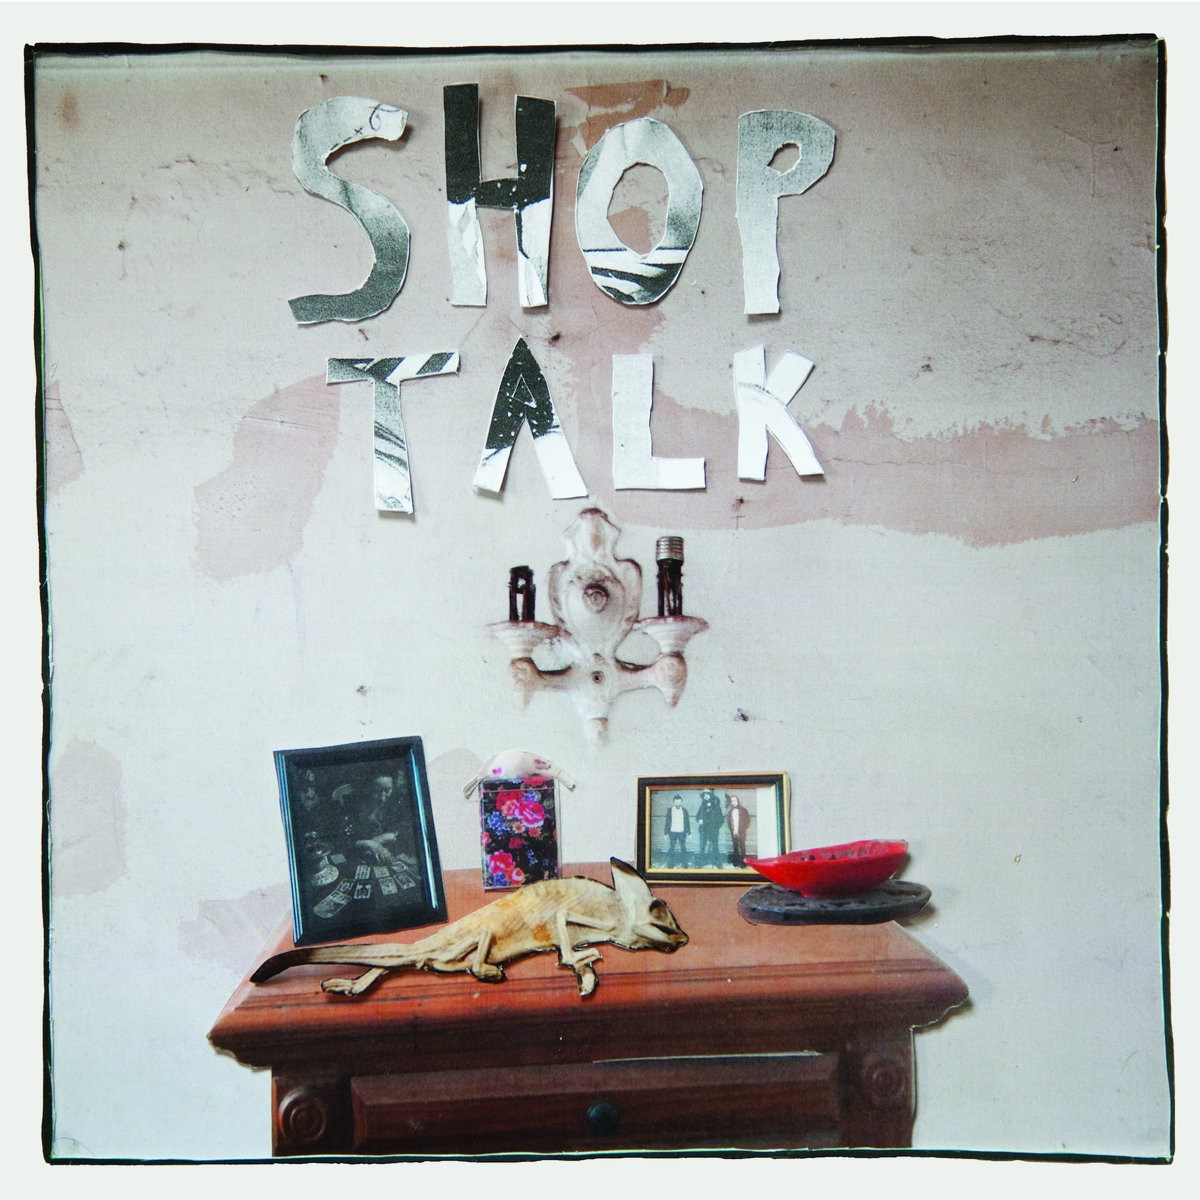 Shop Talk Queening Pygmy Shrews Liturgy releasing st debut LP 1200x1200